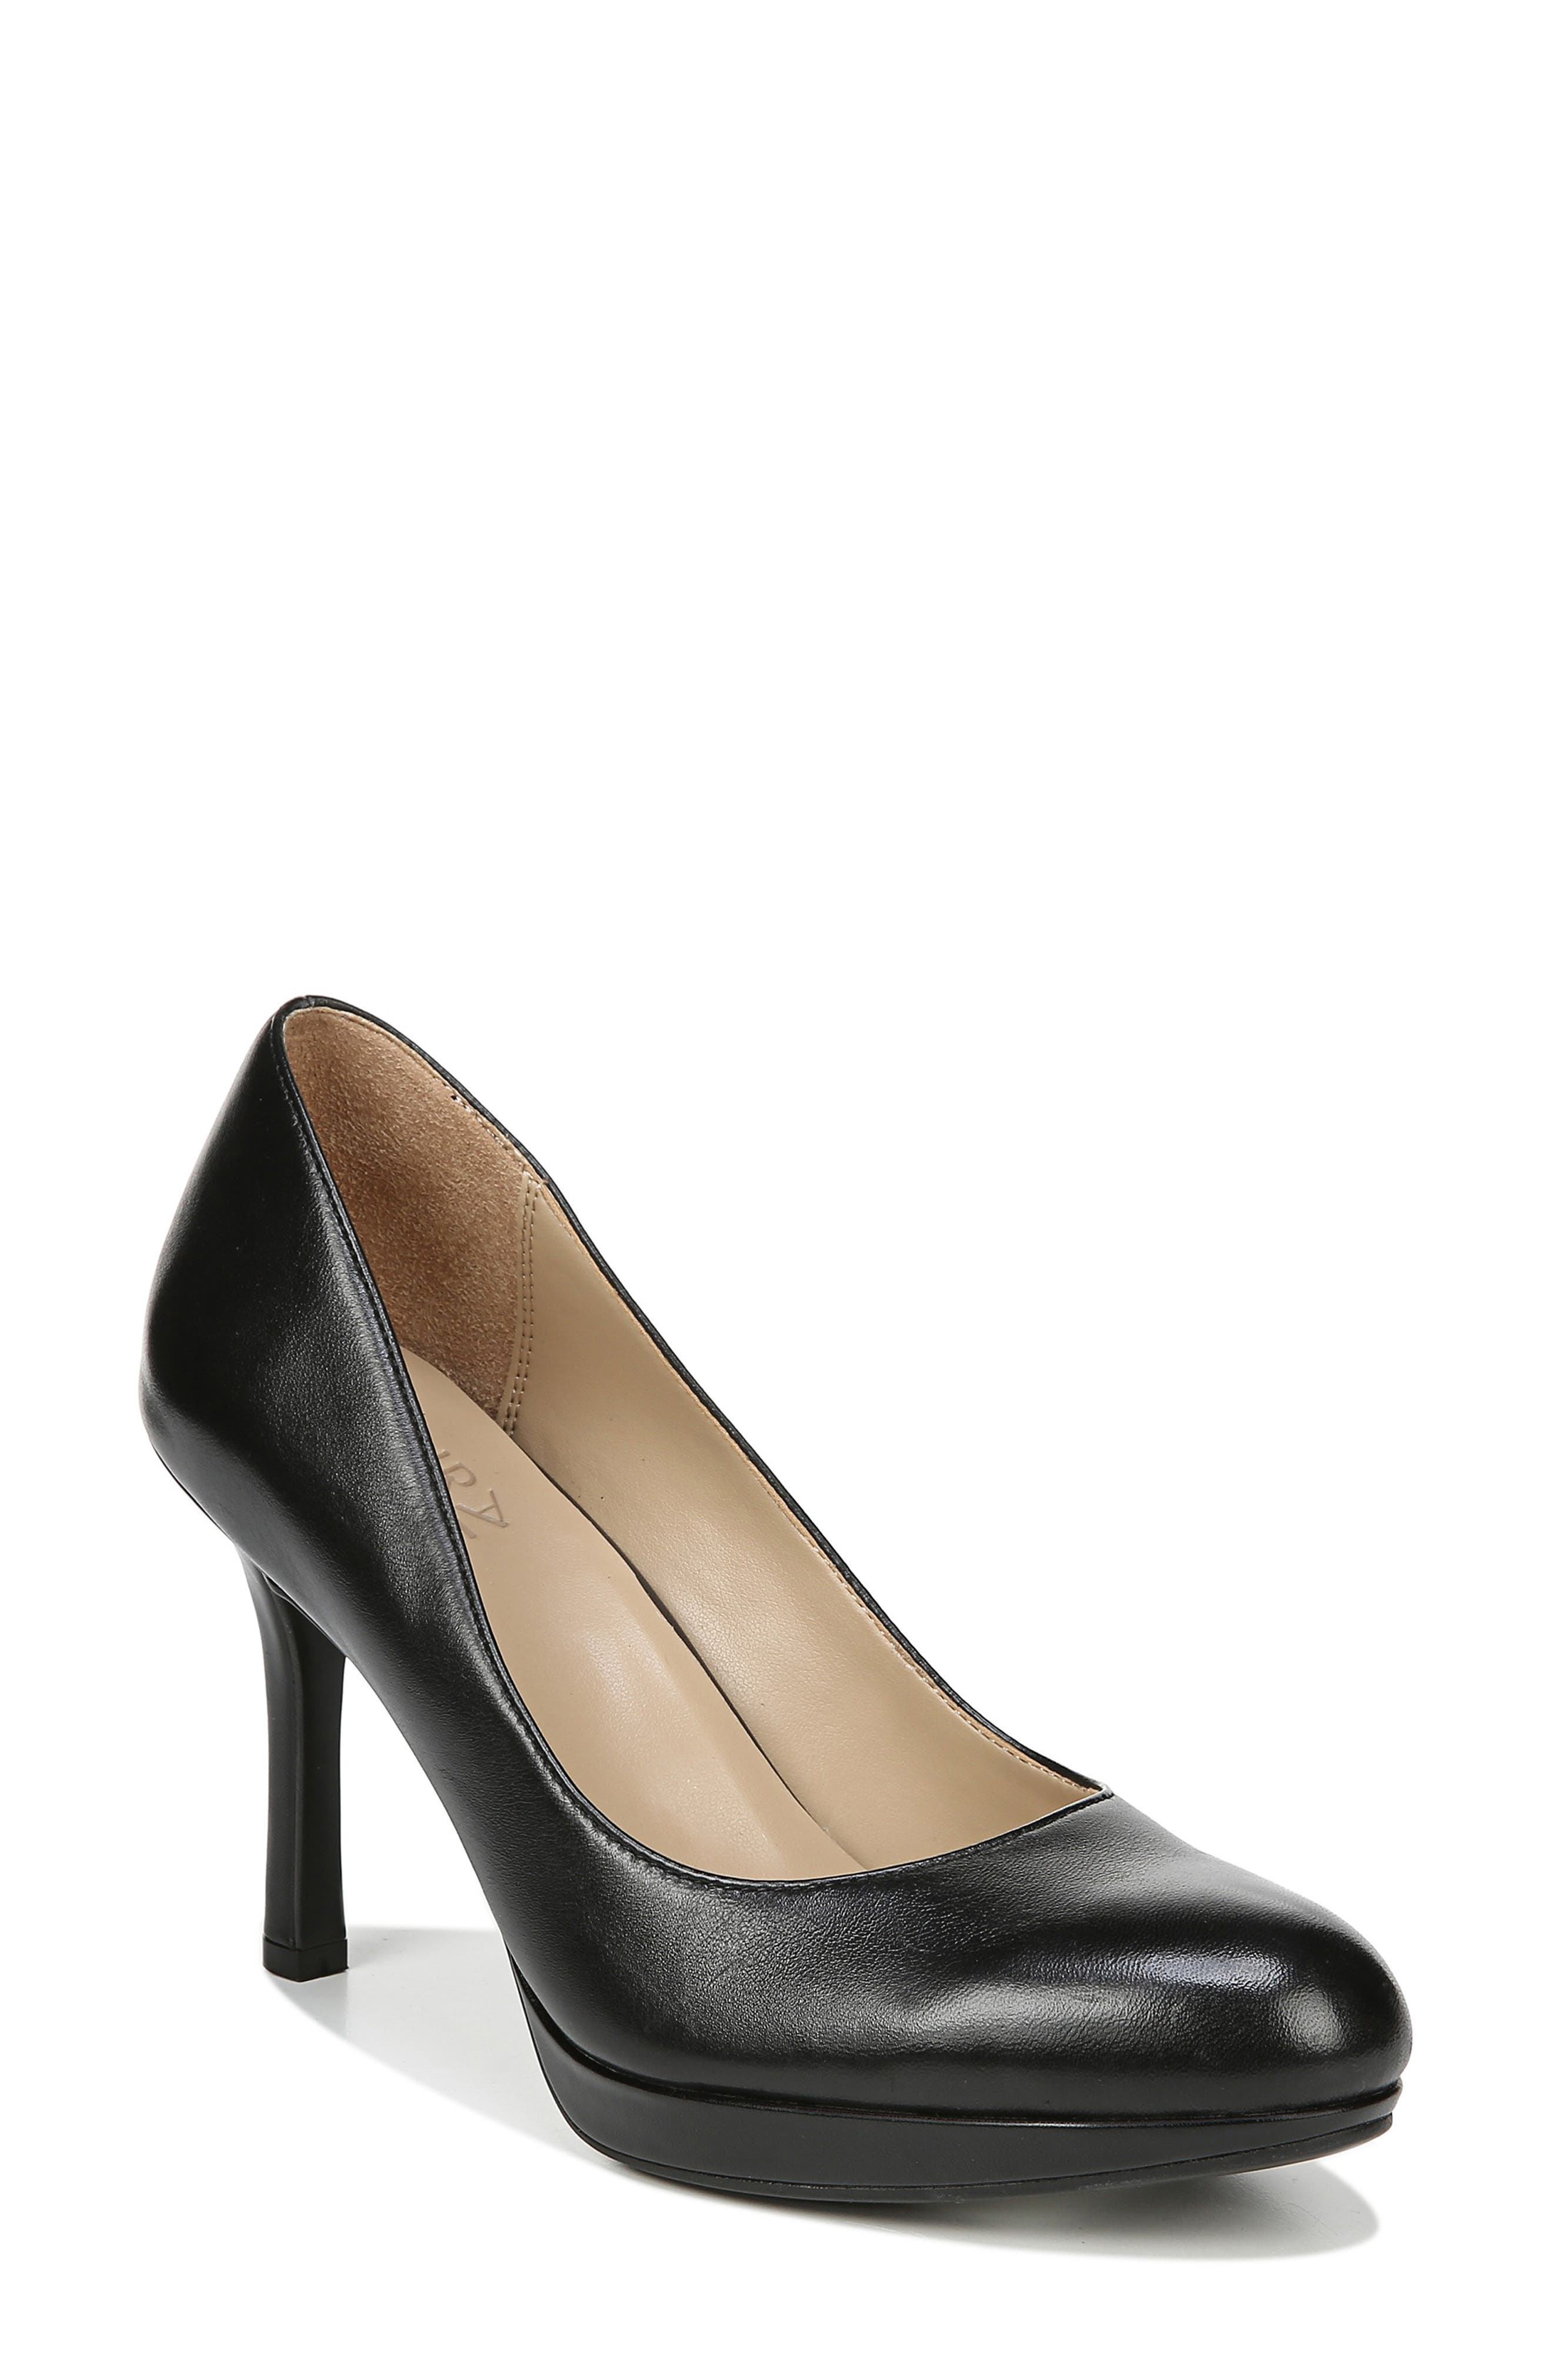 Naturalizer Celina Almond Toe Pump- Black